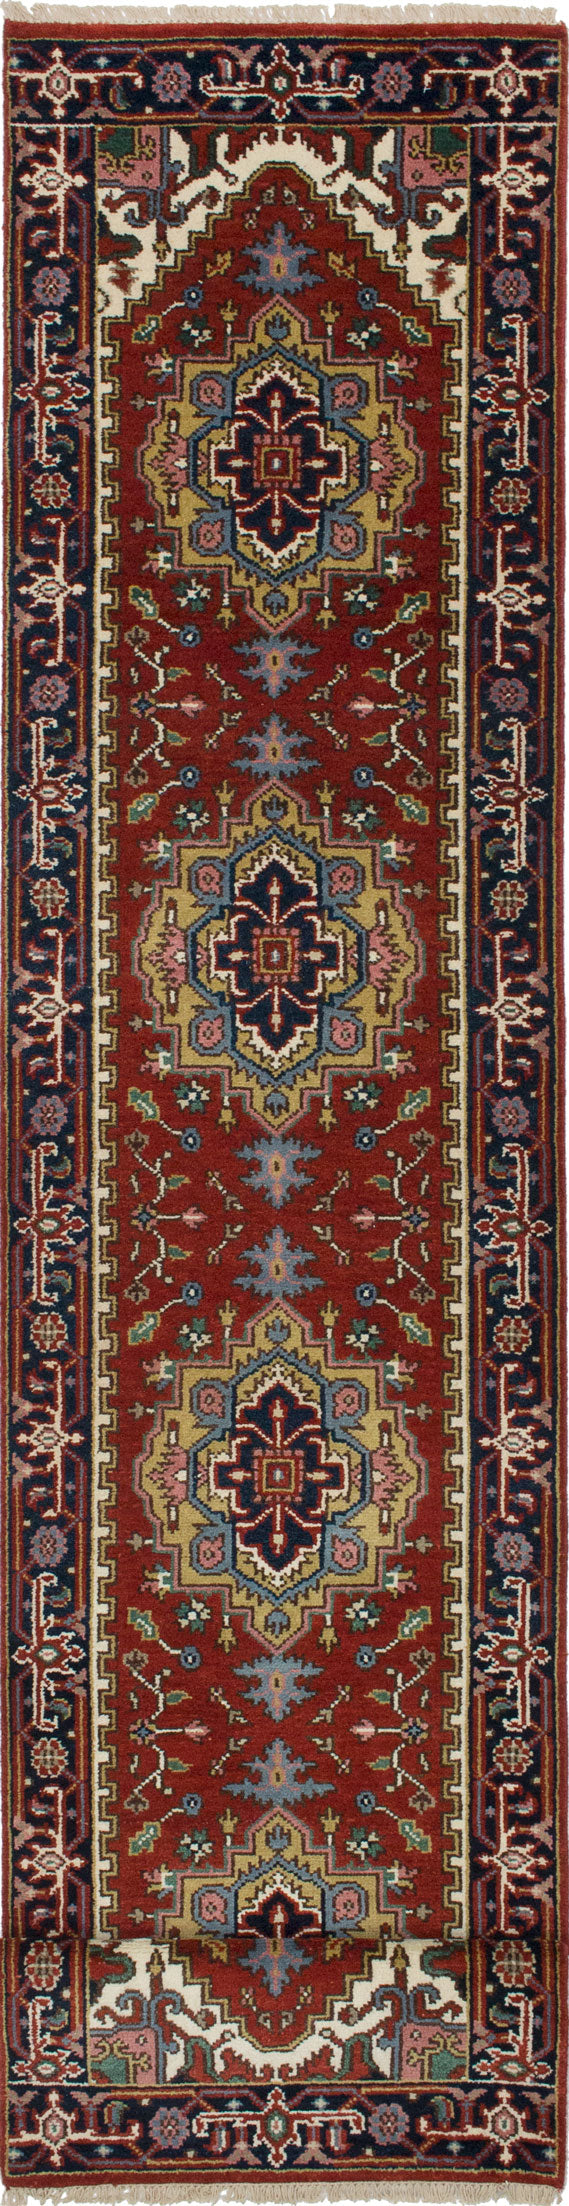 "Hand-knotted Indian Floral  Traditional Serapi-Heritage Runner rug  Dark Orange 2'6 x 15'11"" """